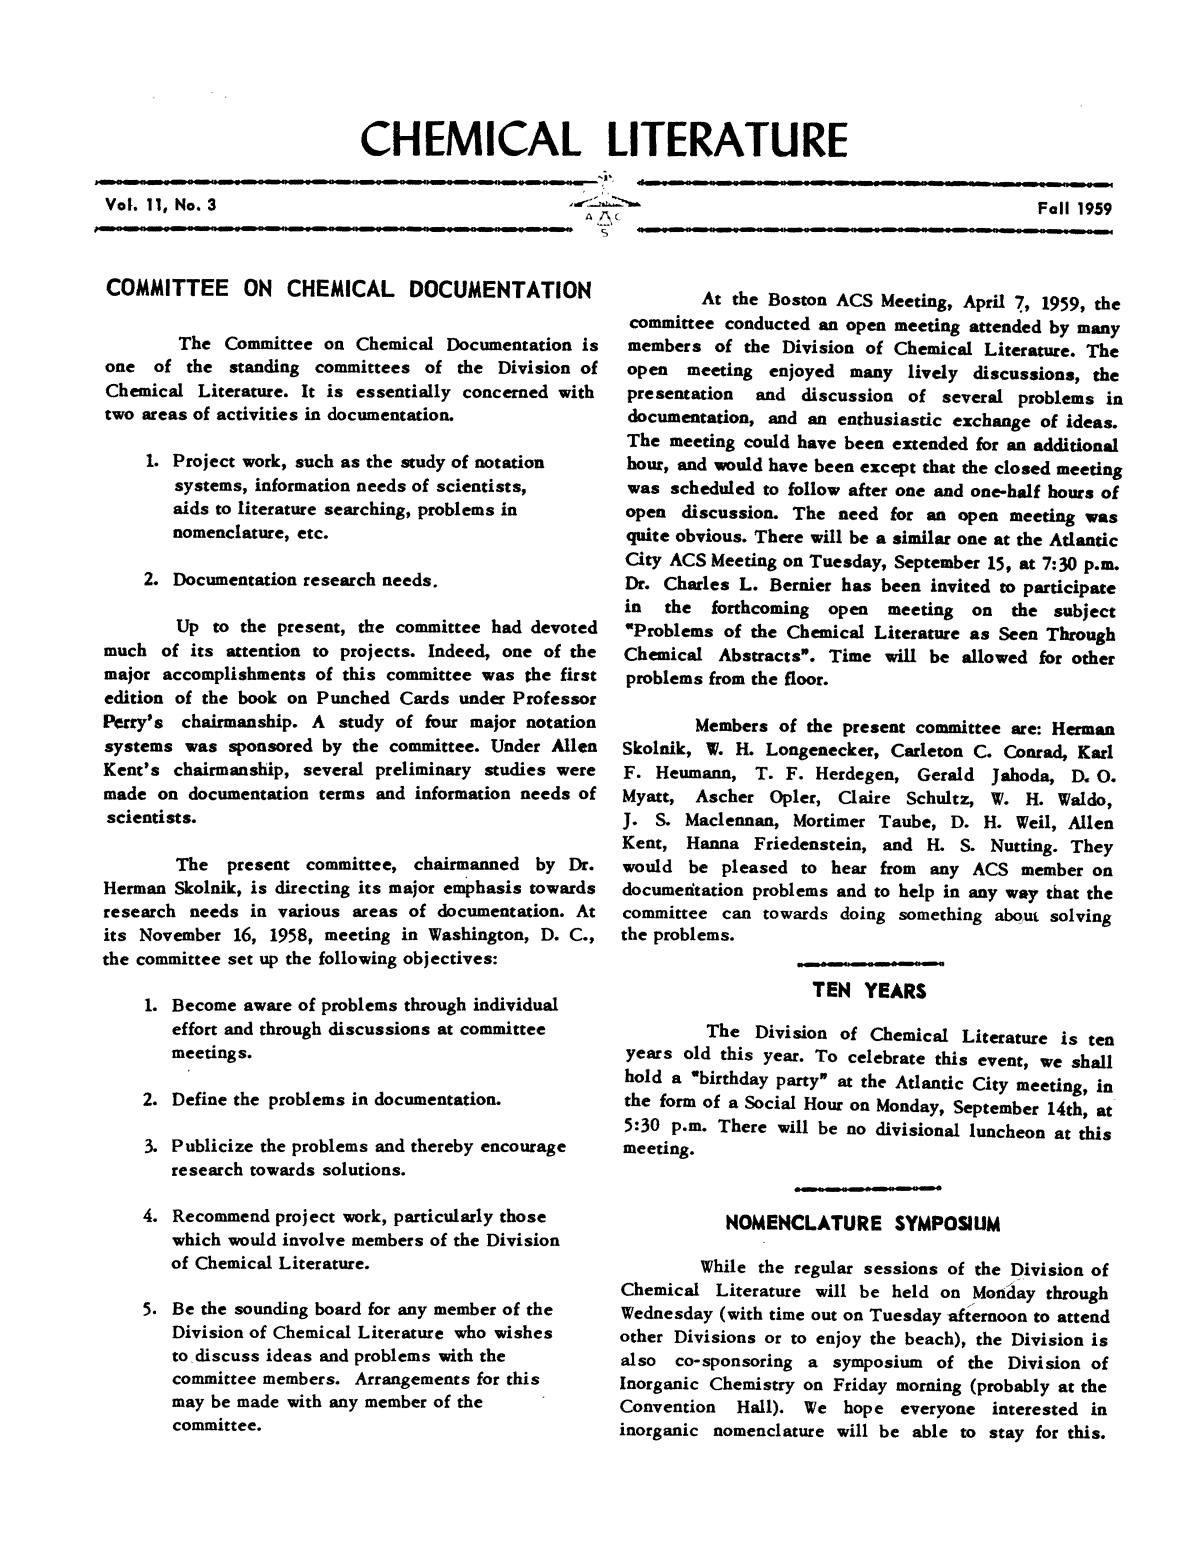 Chemical Literature, Volume 11, Number 3, Fall 1959                                                                                                      1